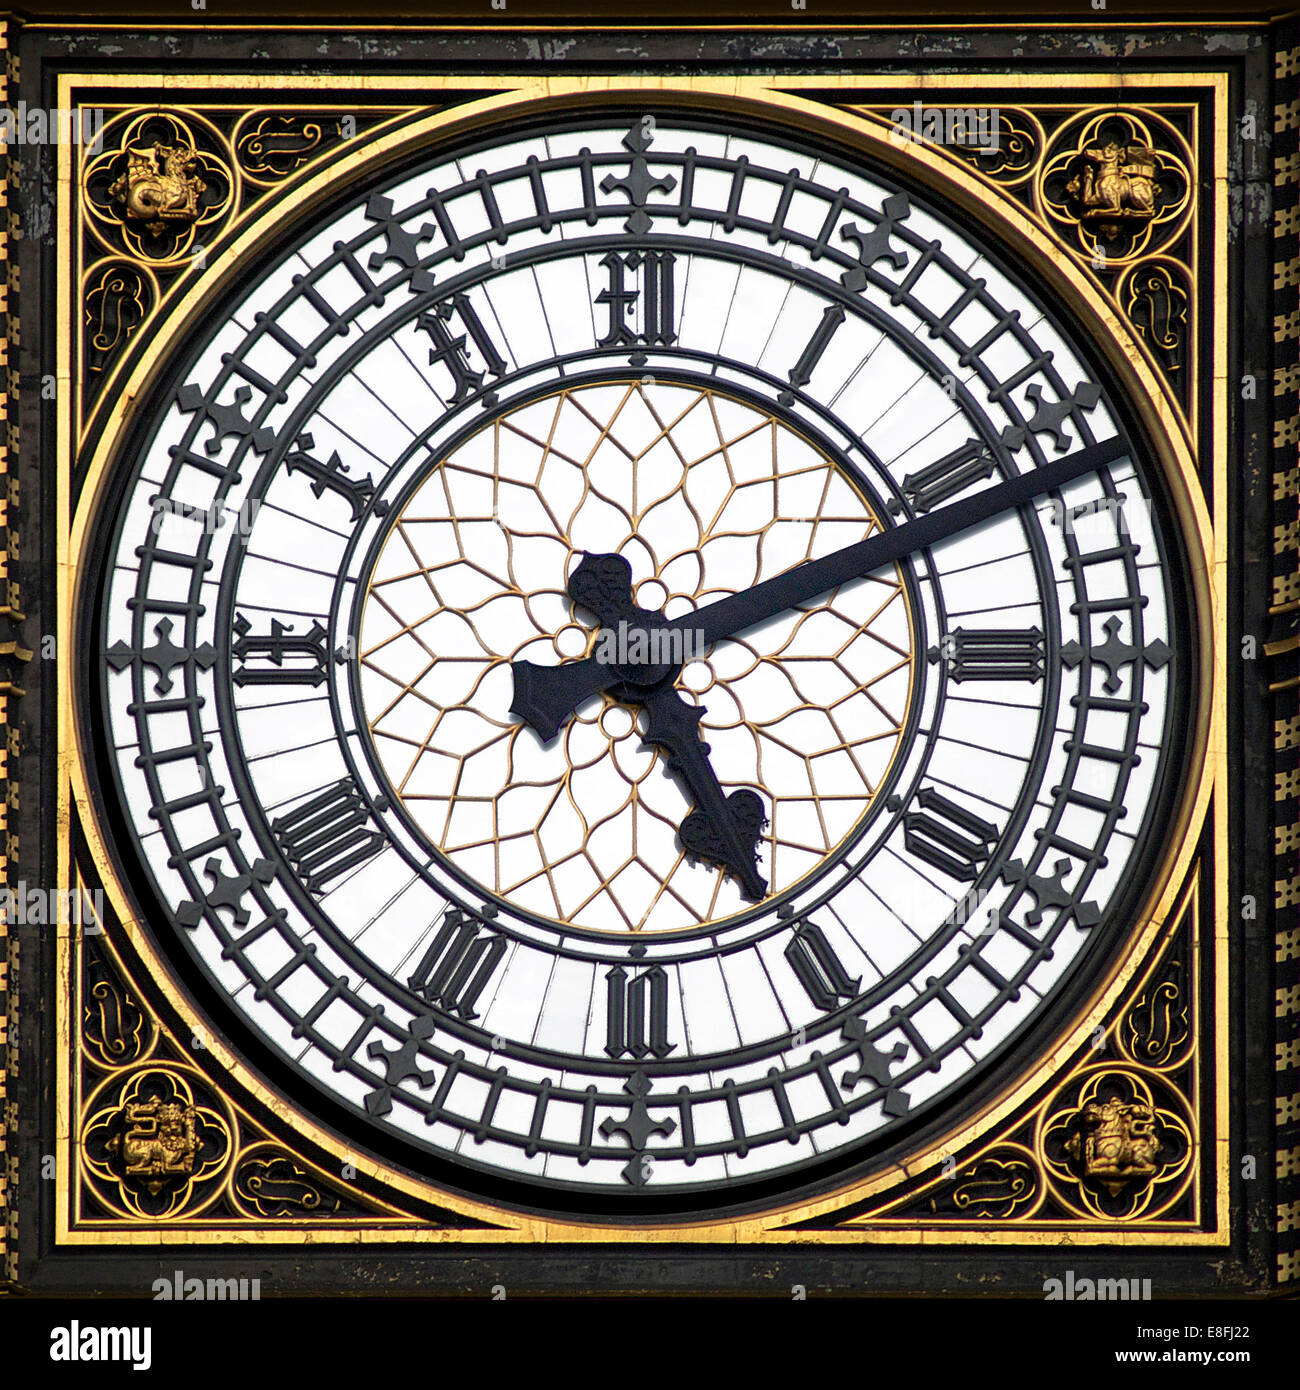 Big Ben Clock Face Stock Photos Amp Big Ben Clock Face Stock